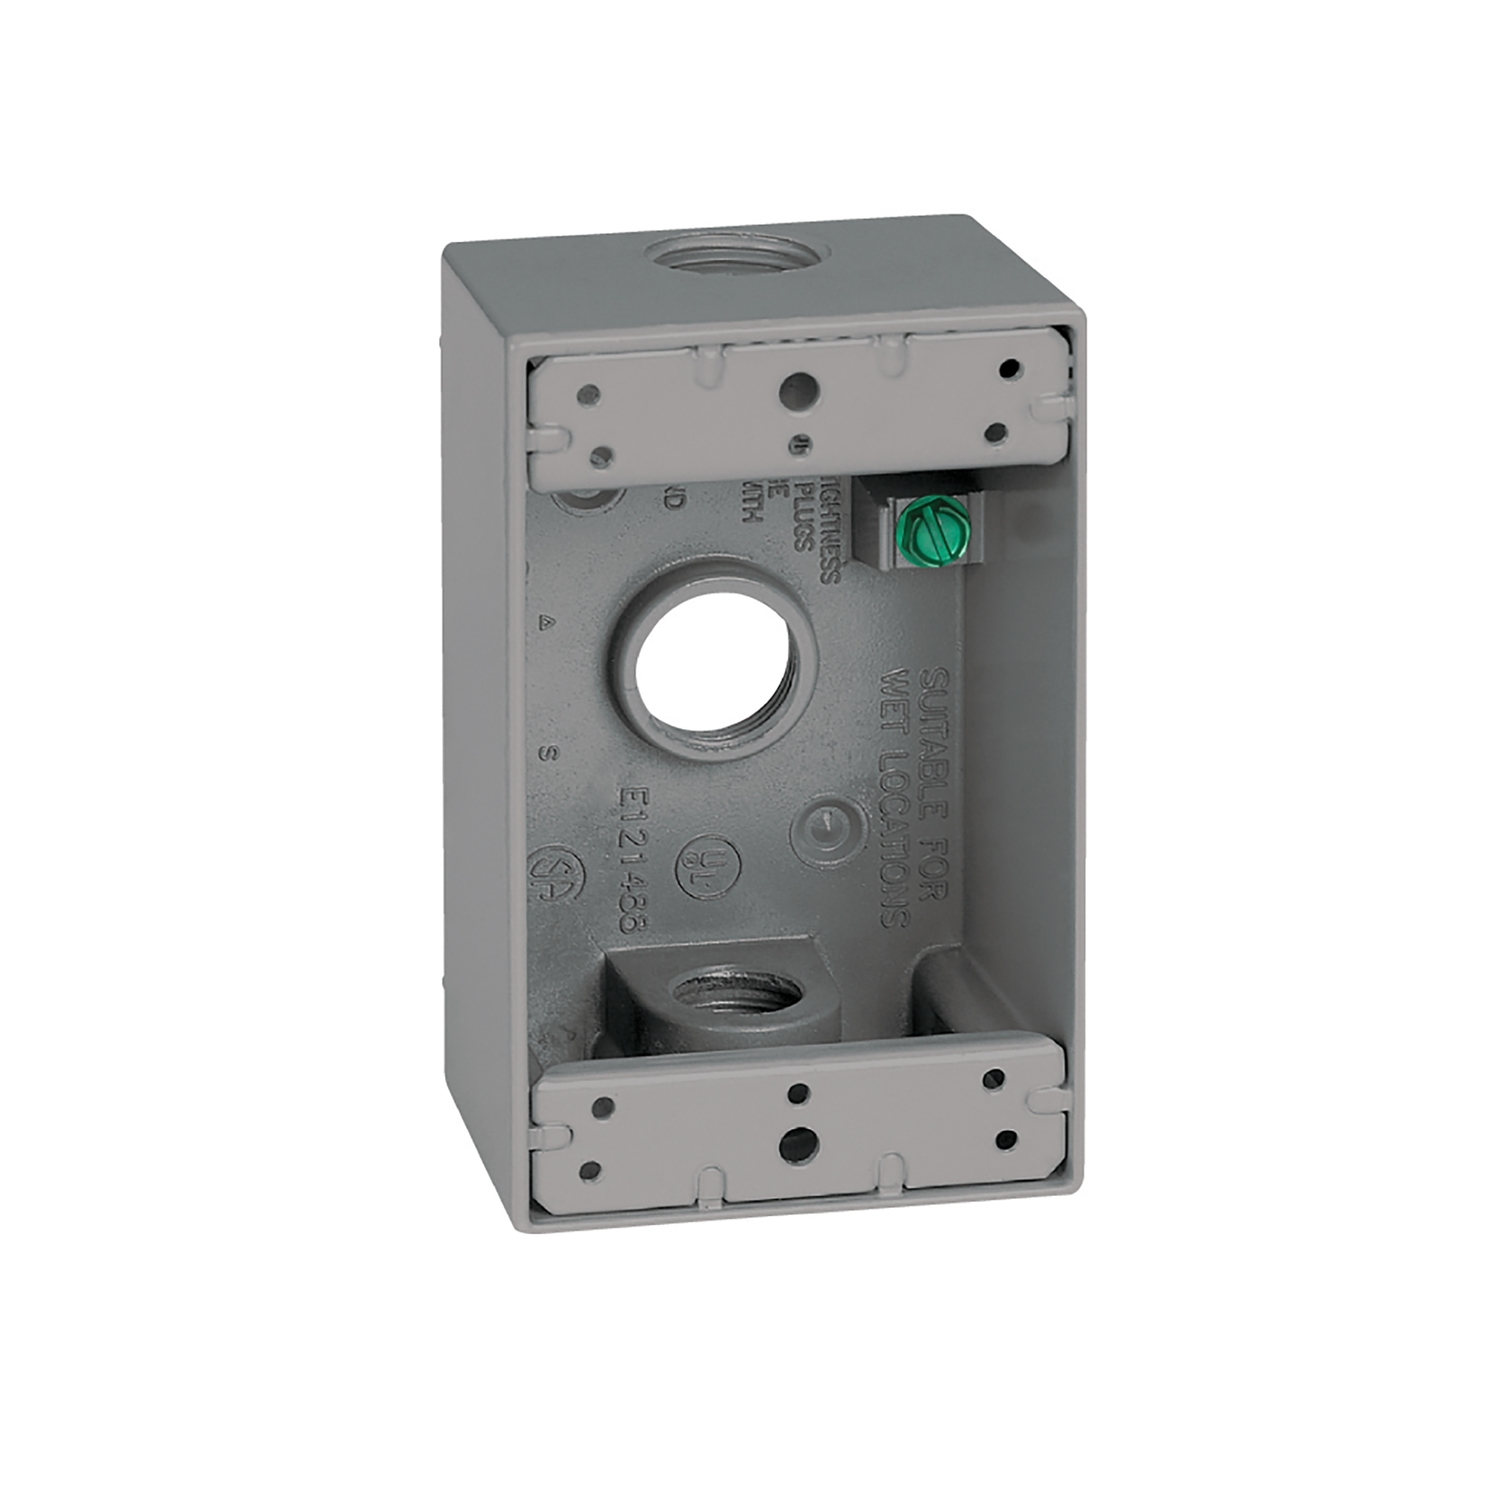 sigma rectangle aluminum 1 gang outlet box gray 4 1 2 in ace hardware rh acehardware com 5 Gang Electrical Box Old Work Electrical Box